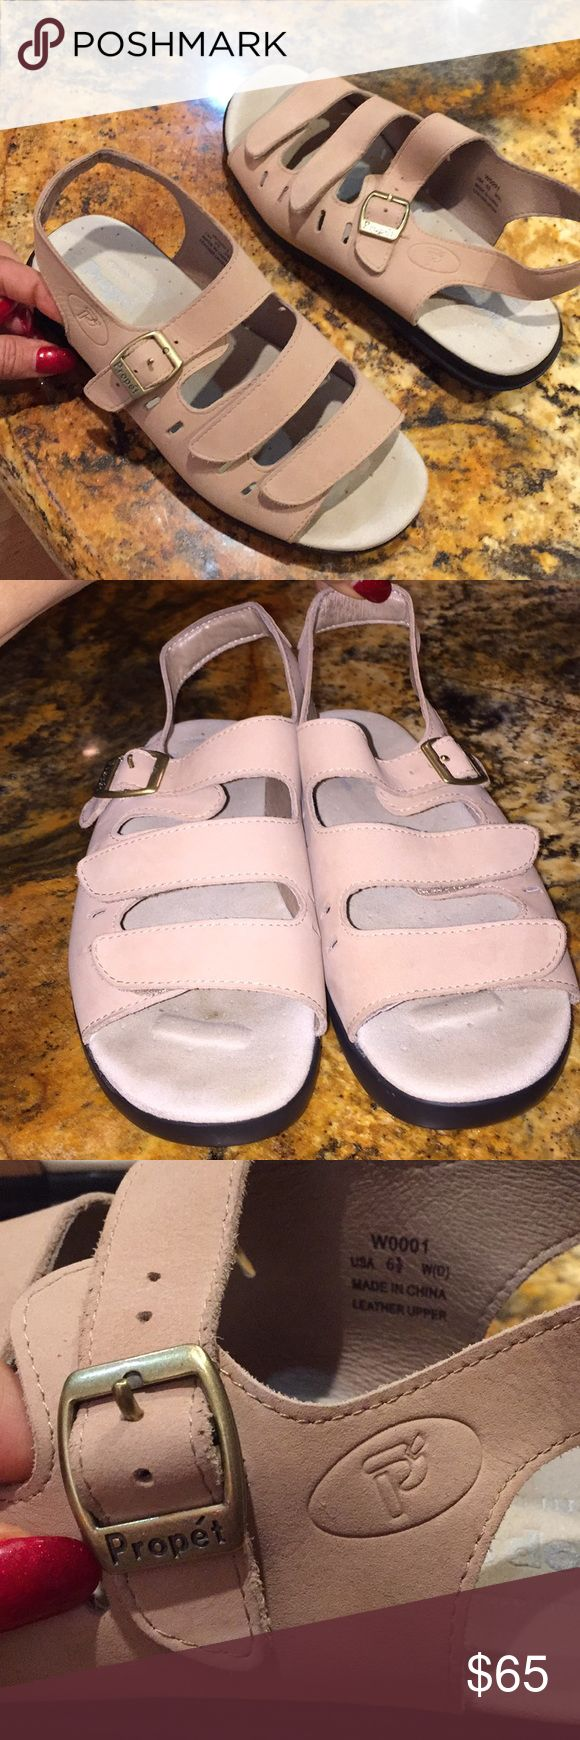 Propét super cushion stability sandal barely worn Perfect for the season on trend pastel blush... sandals built for wear, make standing and walking a pleasure! Propet Shoes Sandals